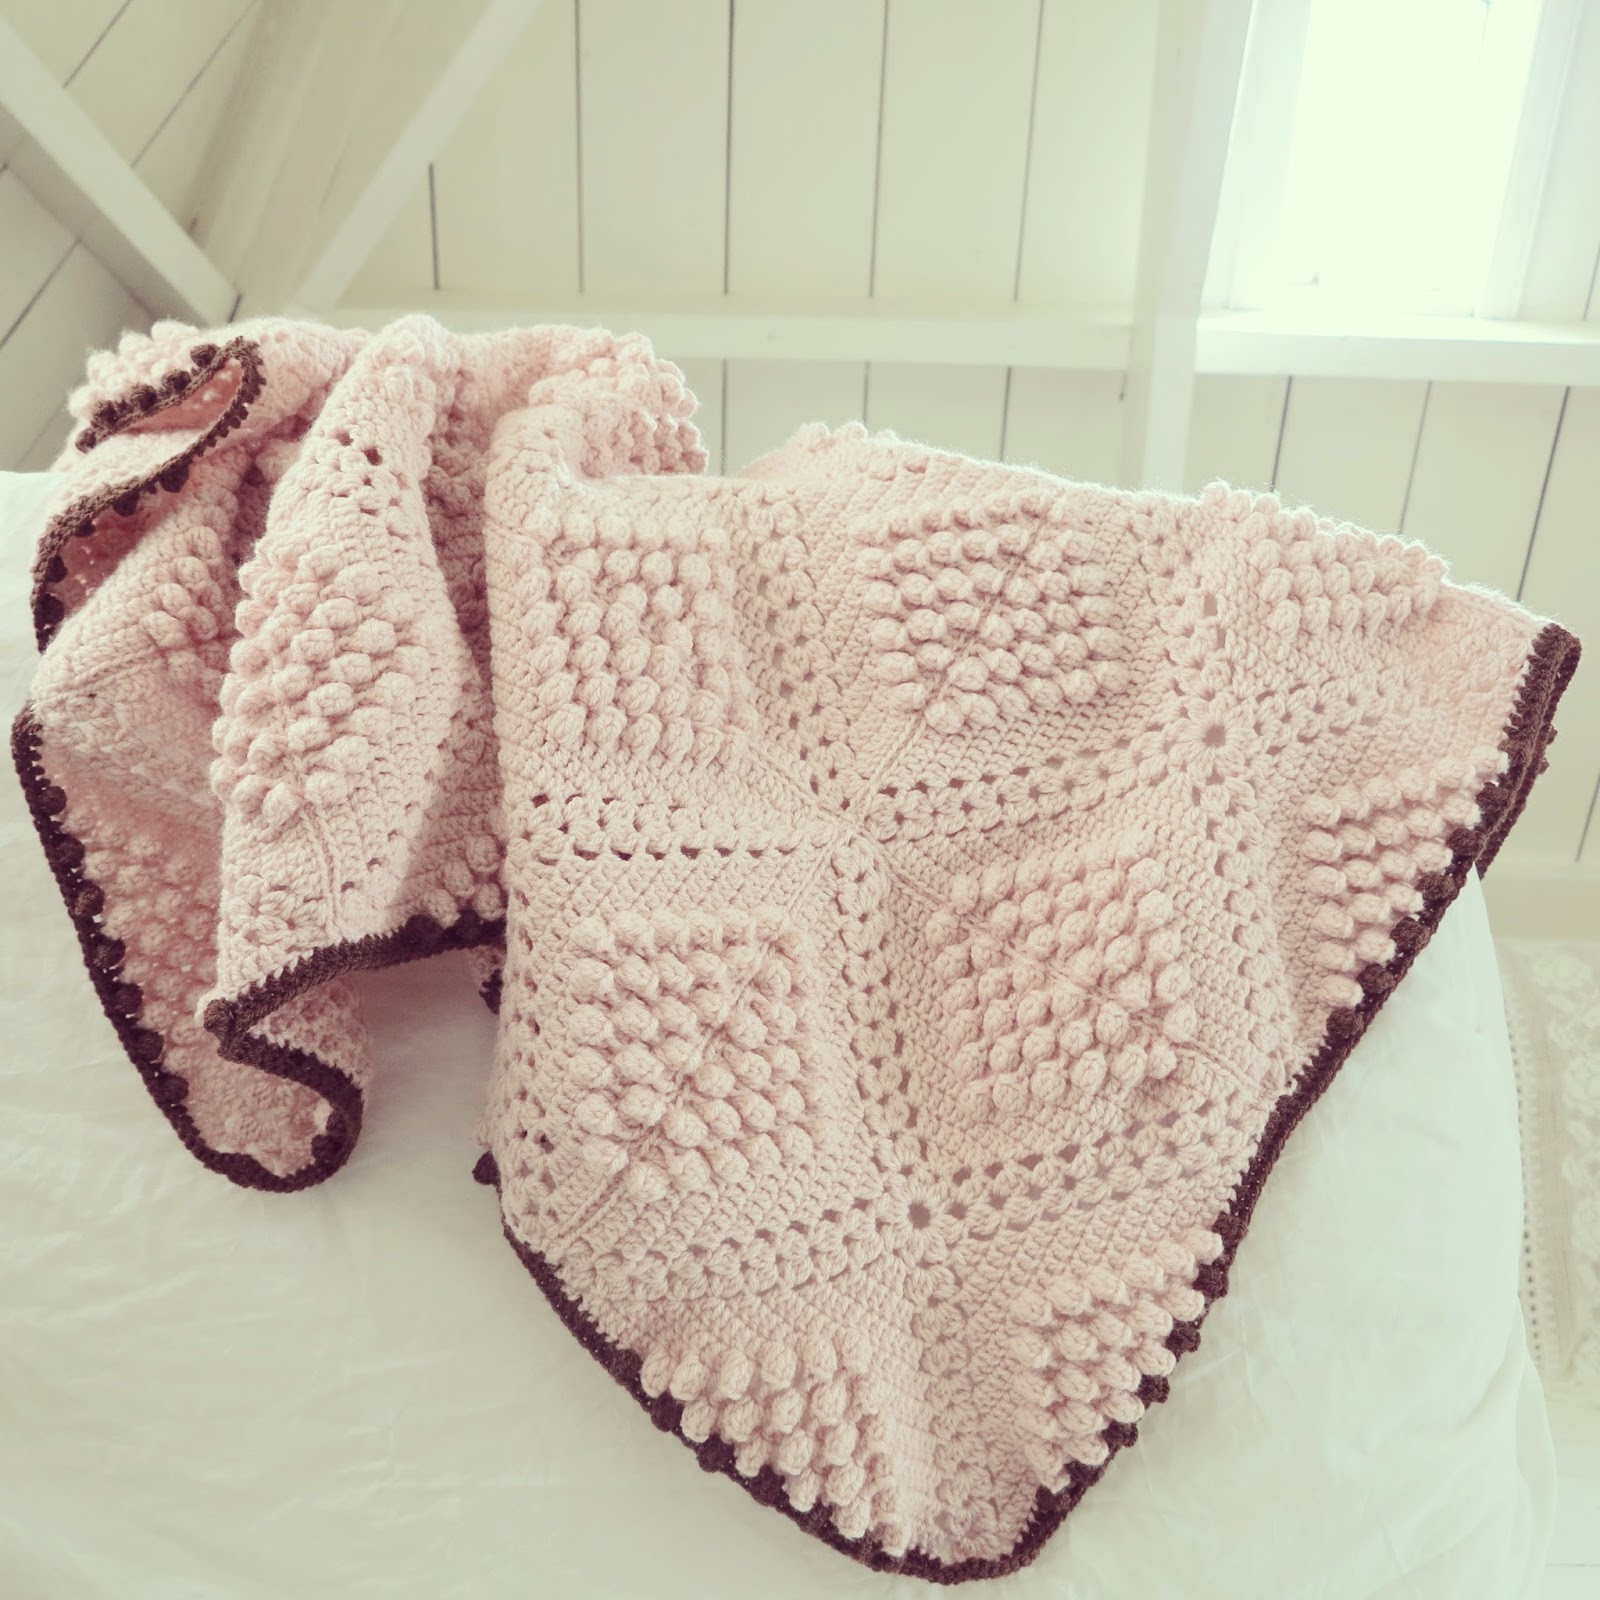 Fresh 10 Free Crochet Patterns & Tutorials for Baby Blankets Popcorn Stitch Crochet Patterns Of Brilliant 41 Ideas Popcorn Stitch Crochet Patterns